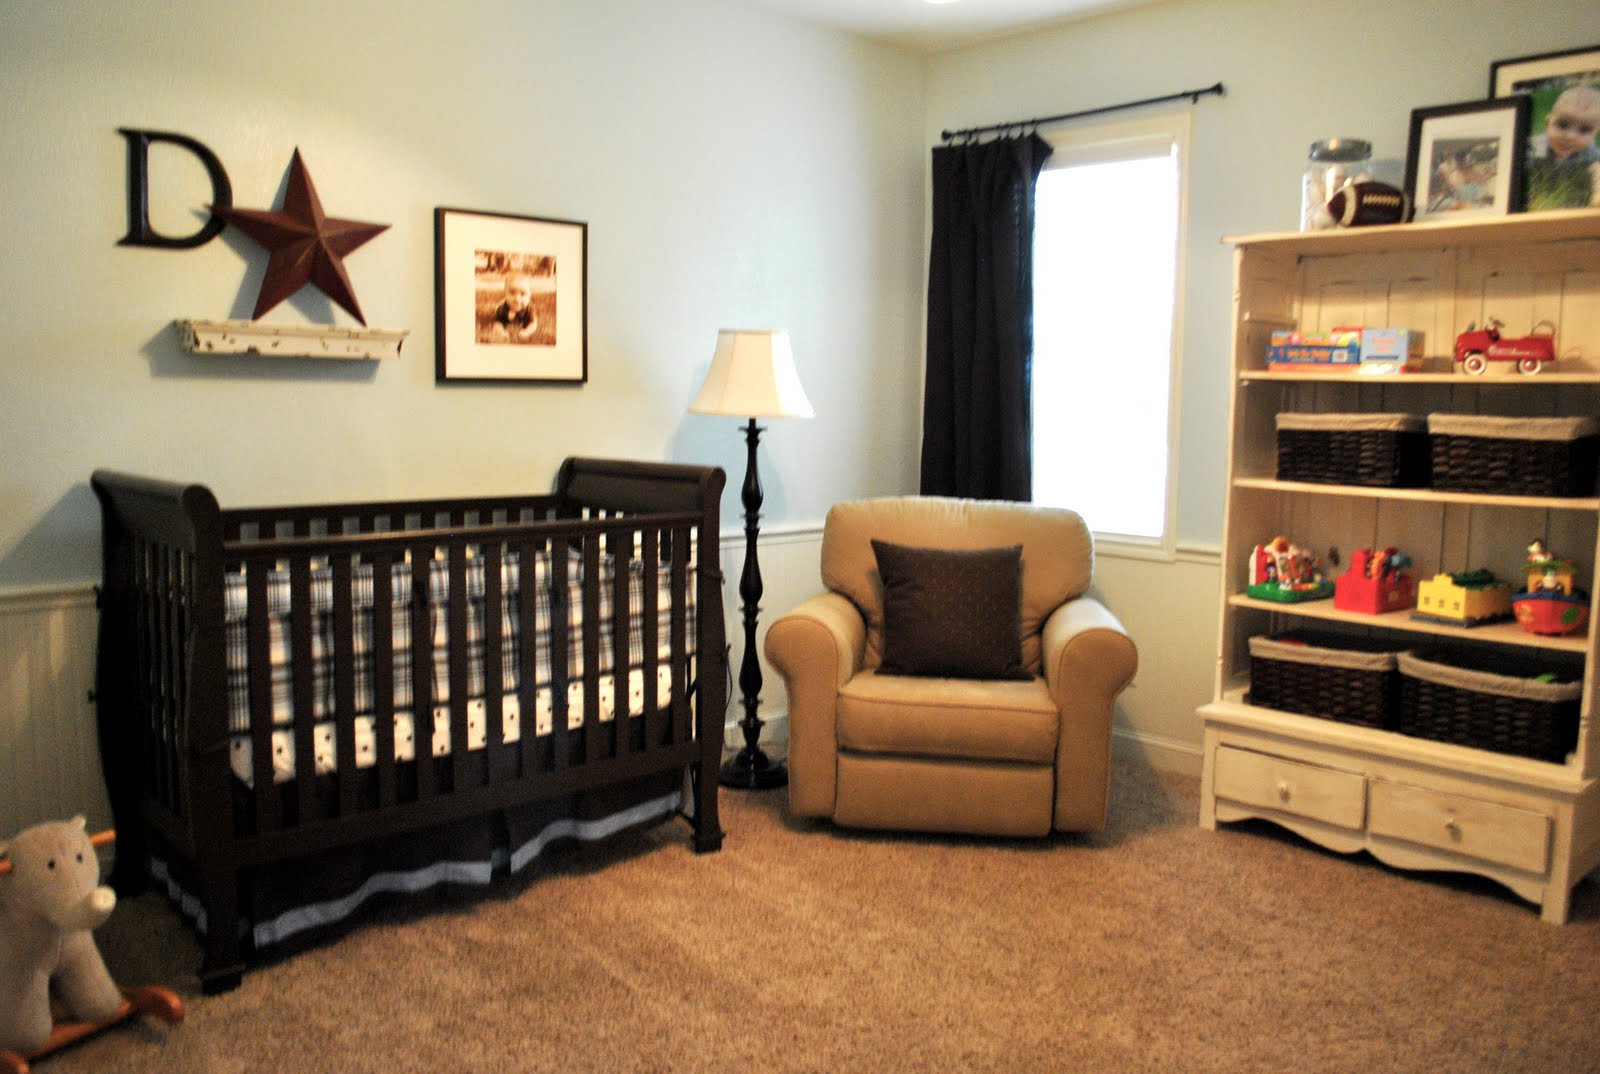 That village house baby boy 39 s nursery - Cute baby rooms ideas ...